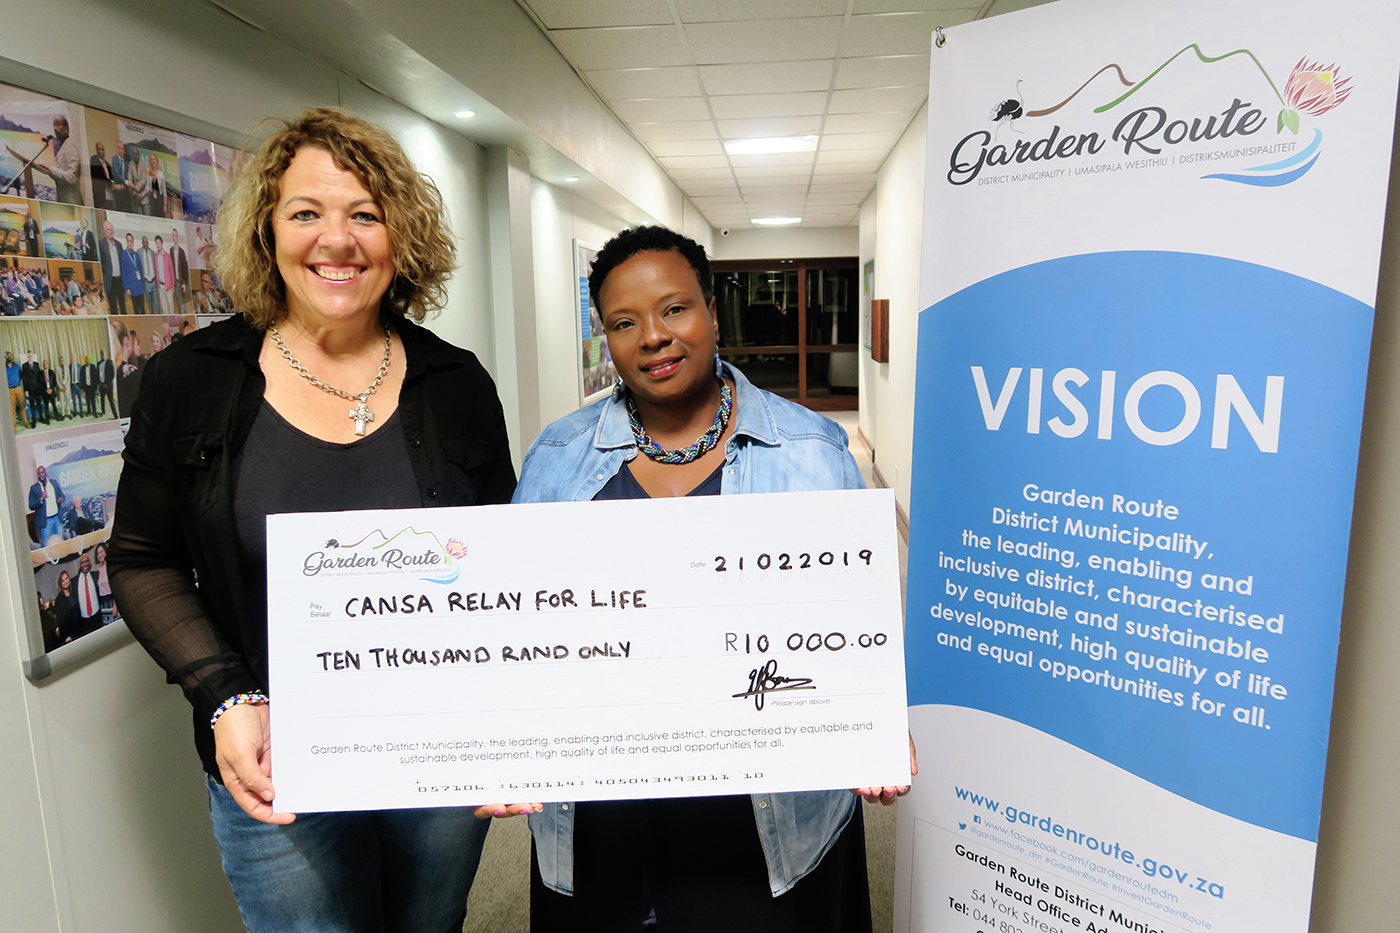 Speaker Bouw-Spies donates R10 000 to CANSA Relay